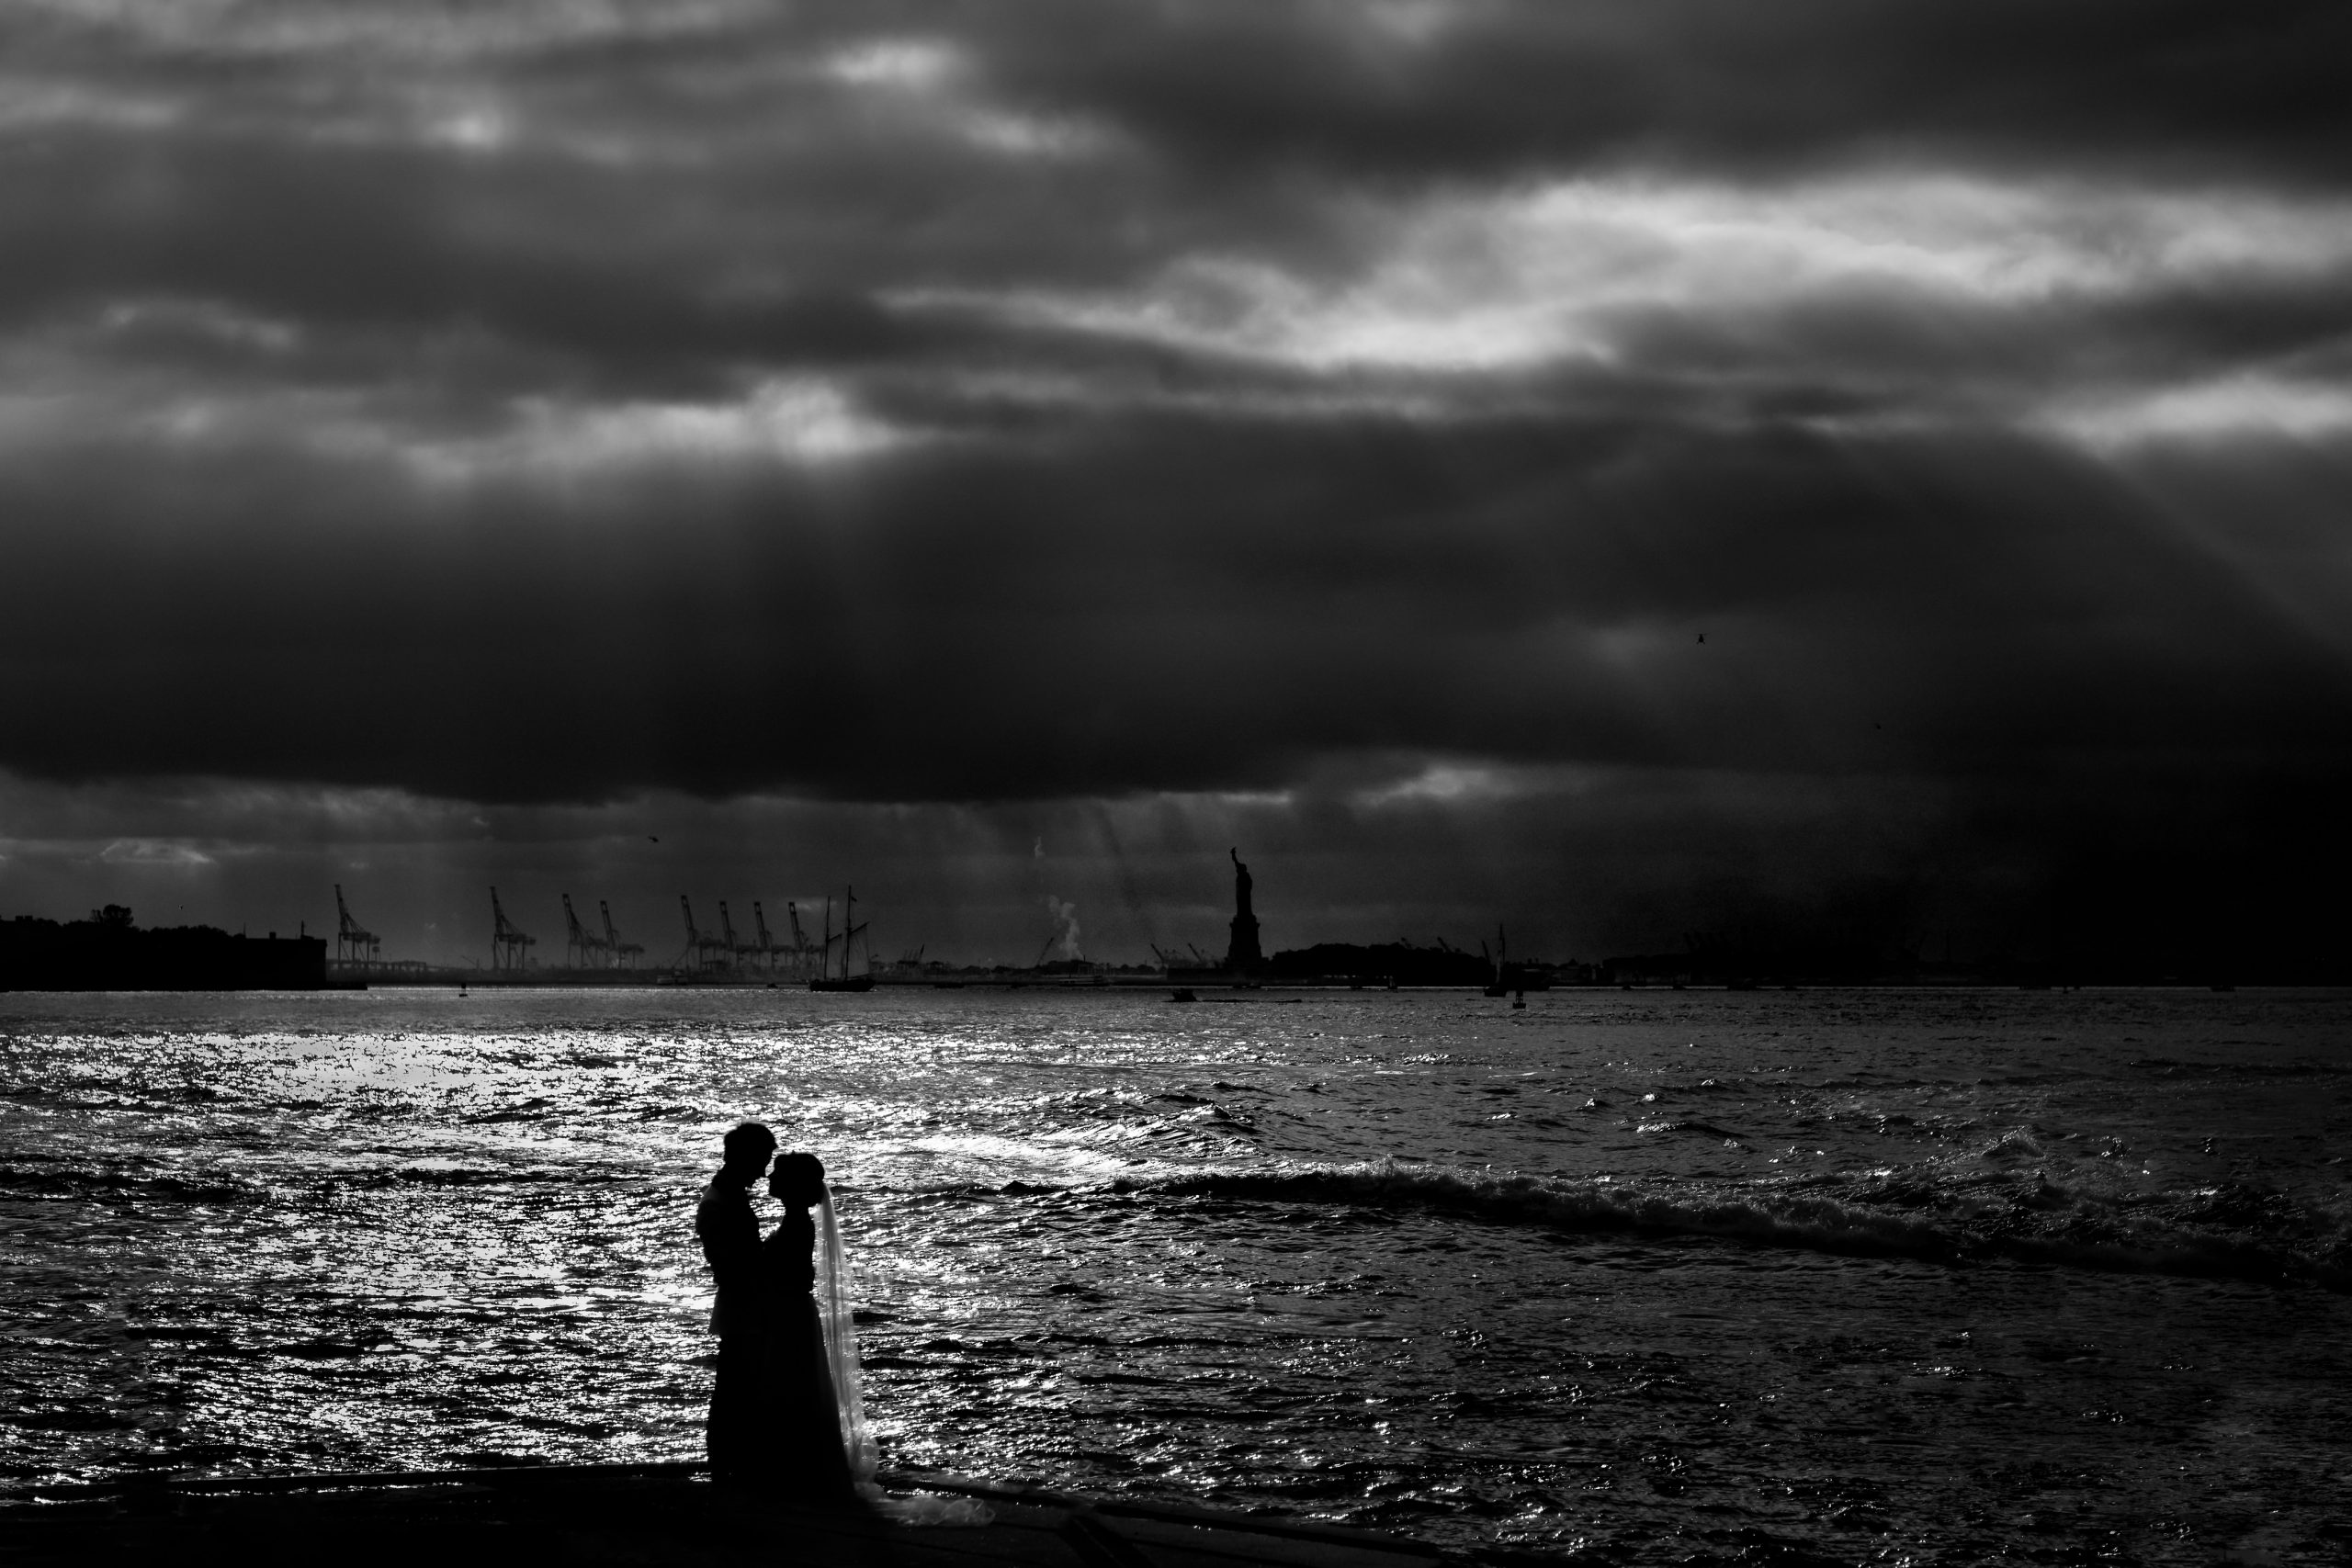 Newlyweds embrace at New York Harbor in front of brewing storm